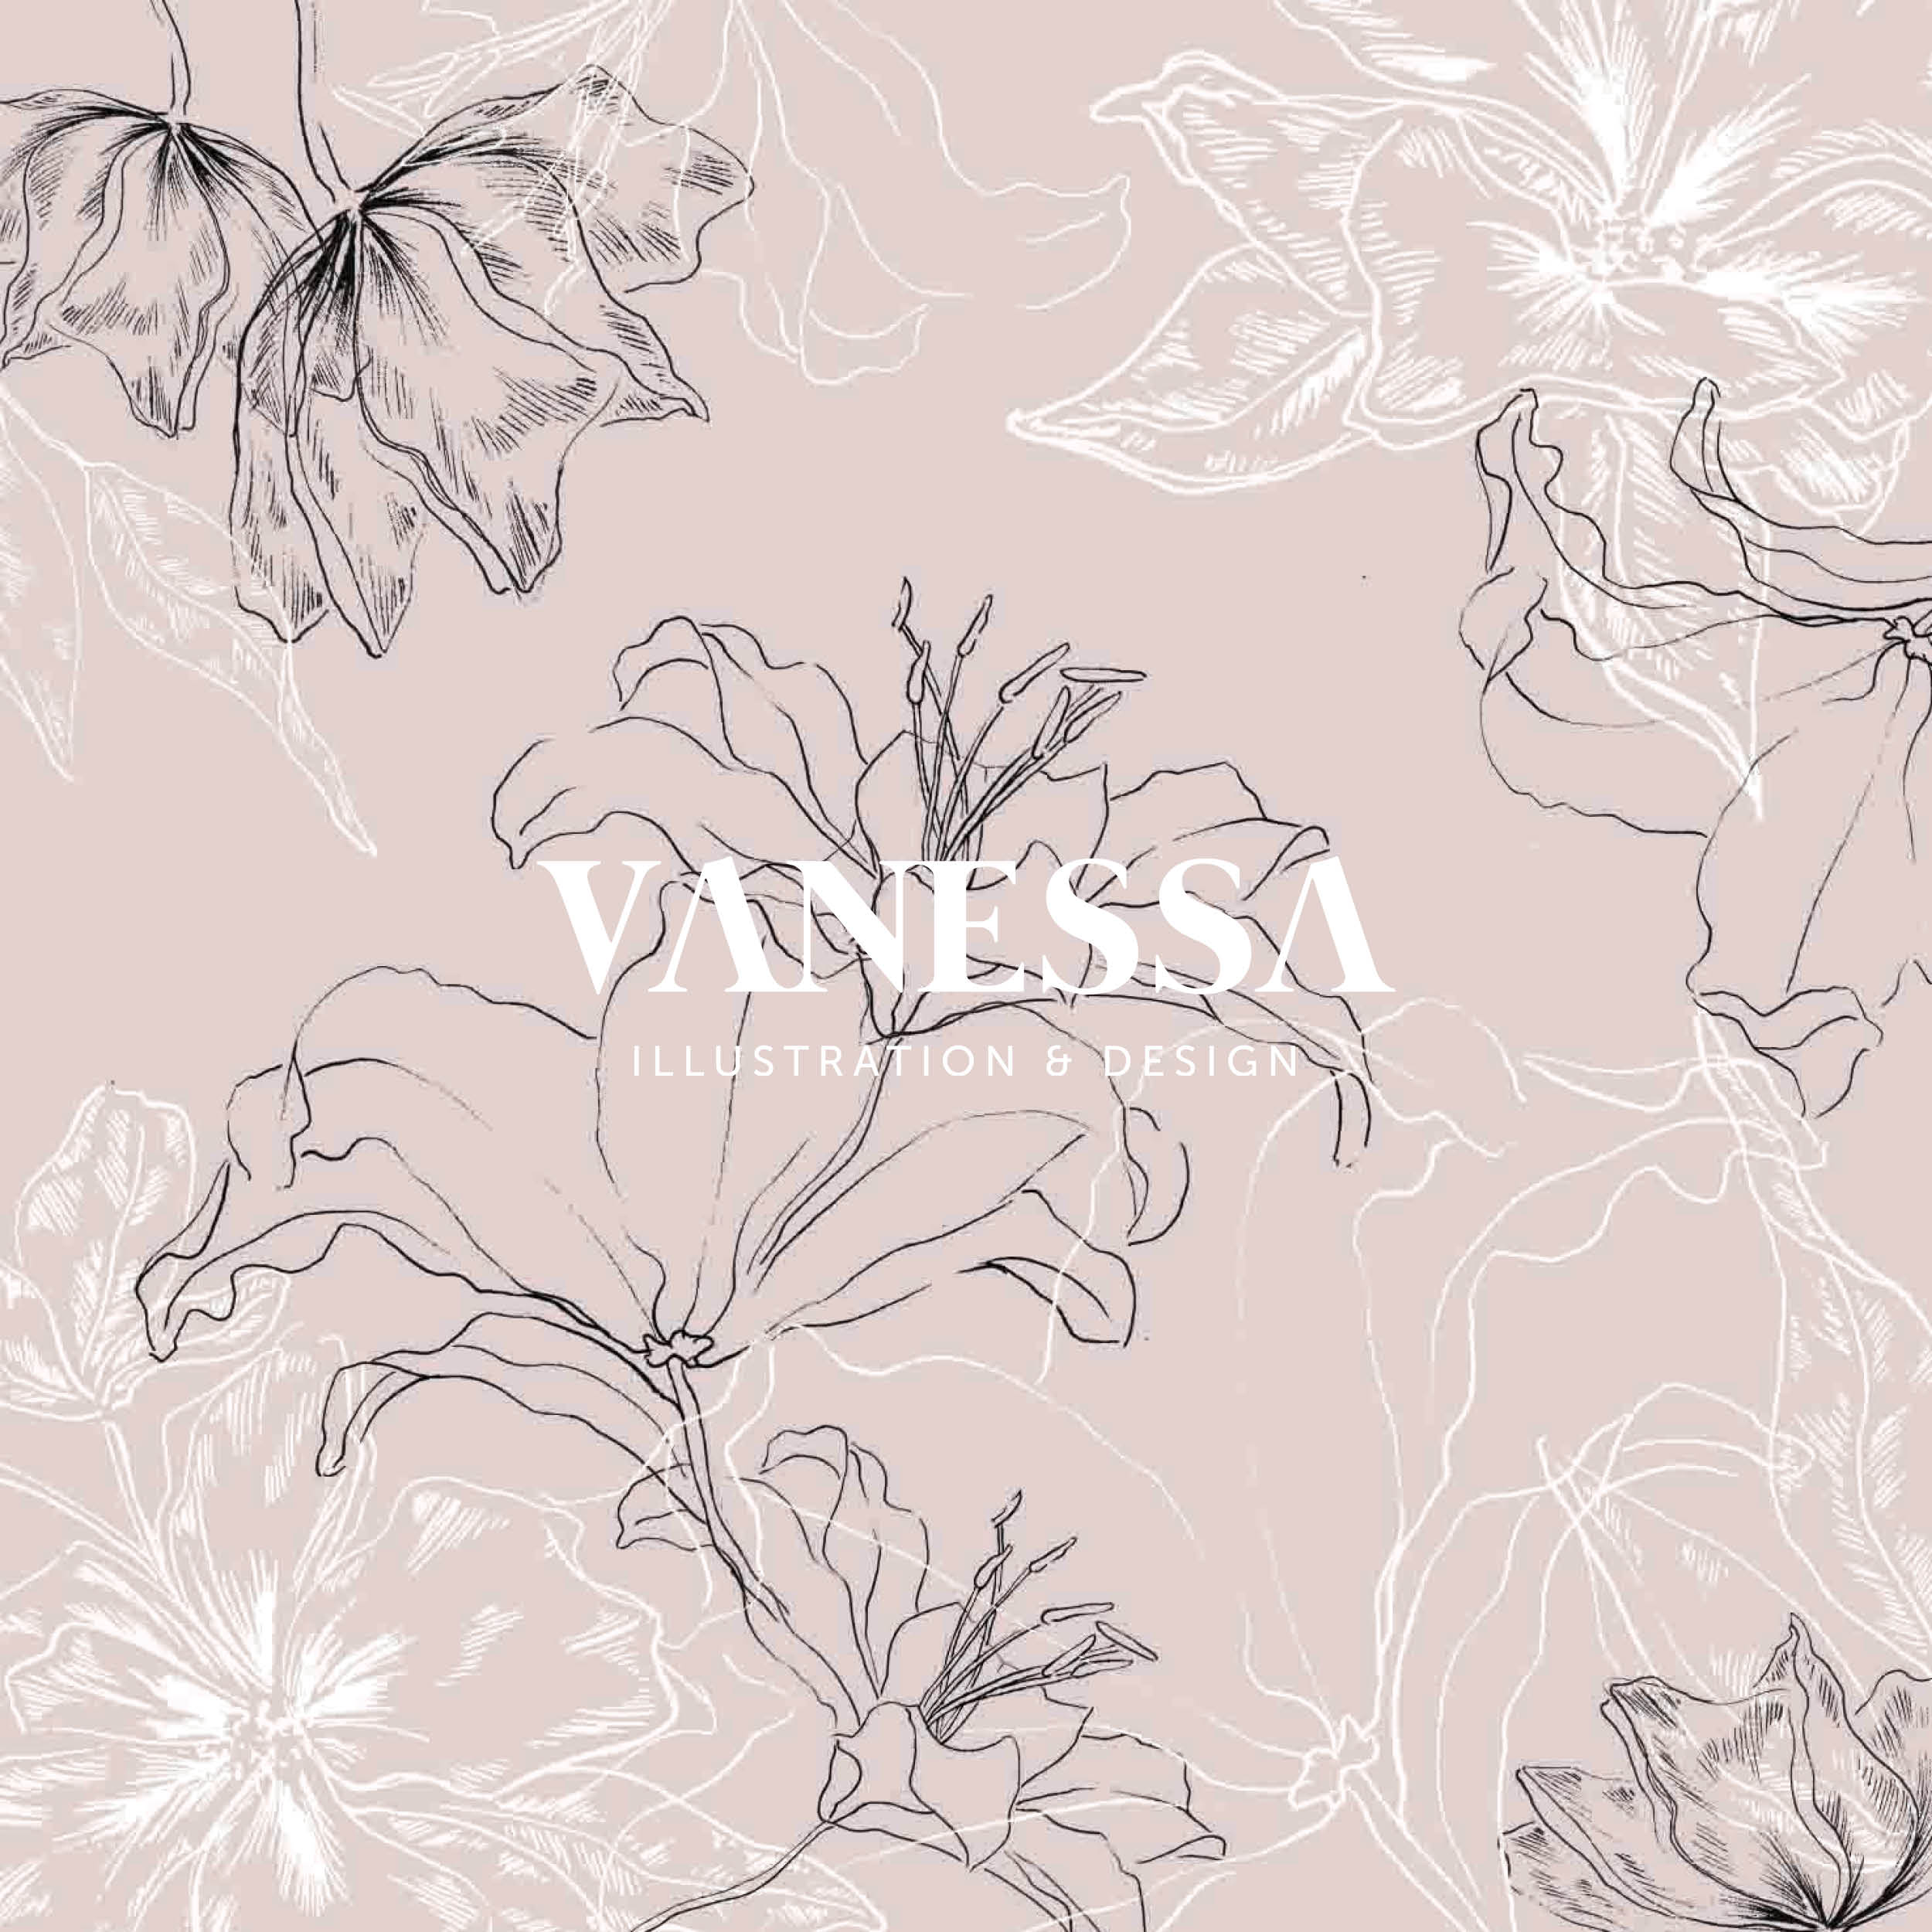 Vanessa Vanderhaven Illustration and Design6.jpg